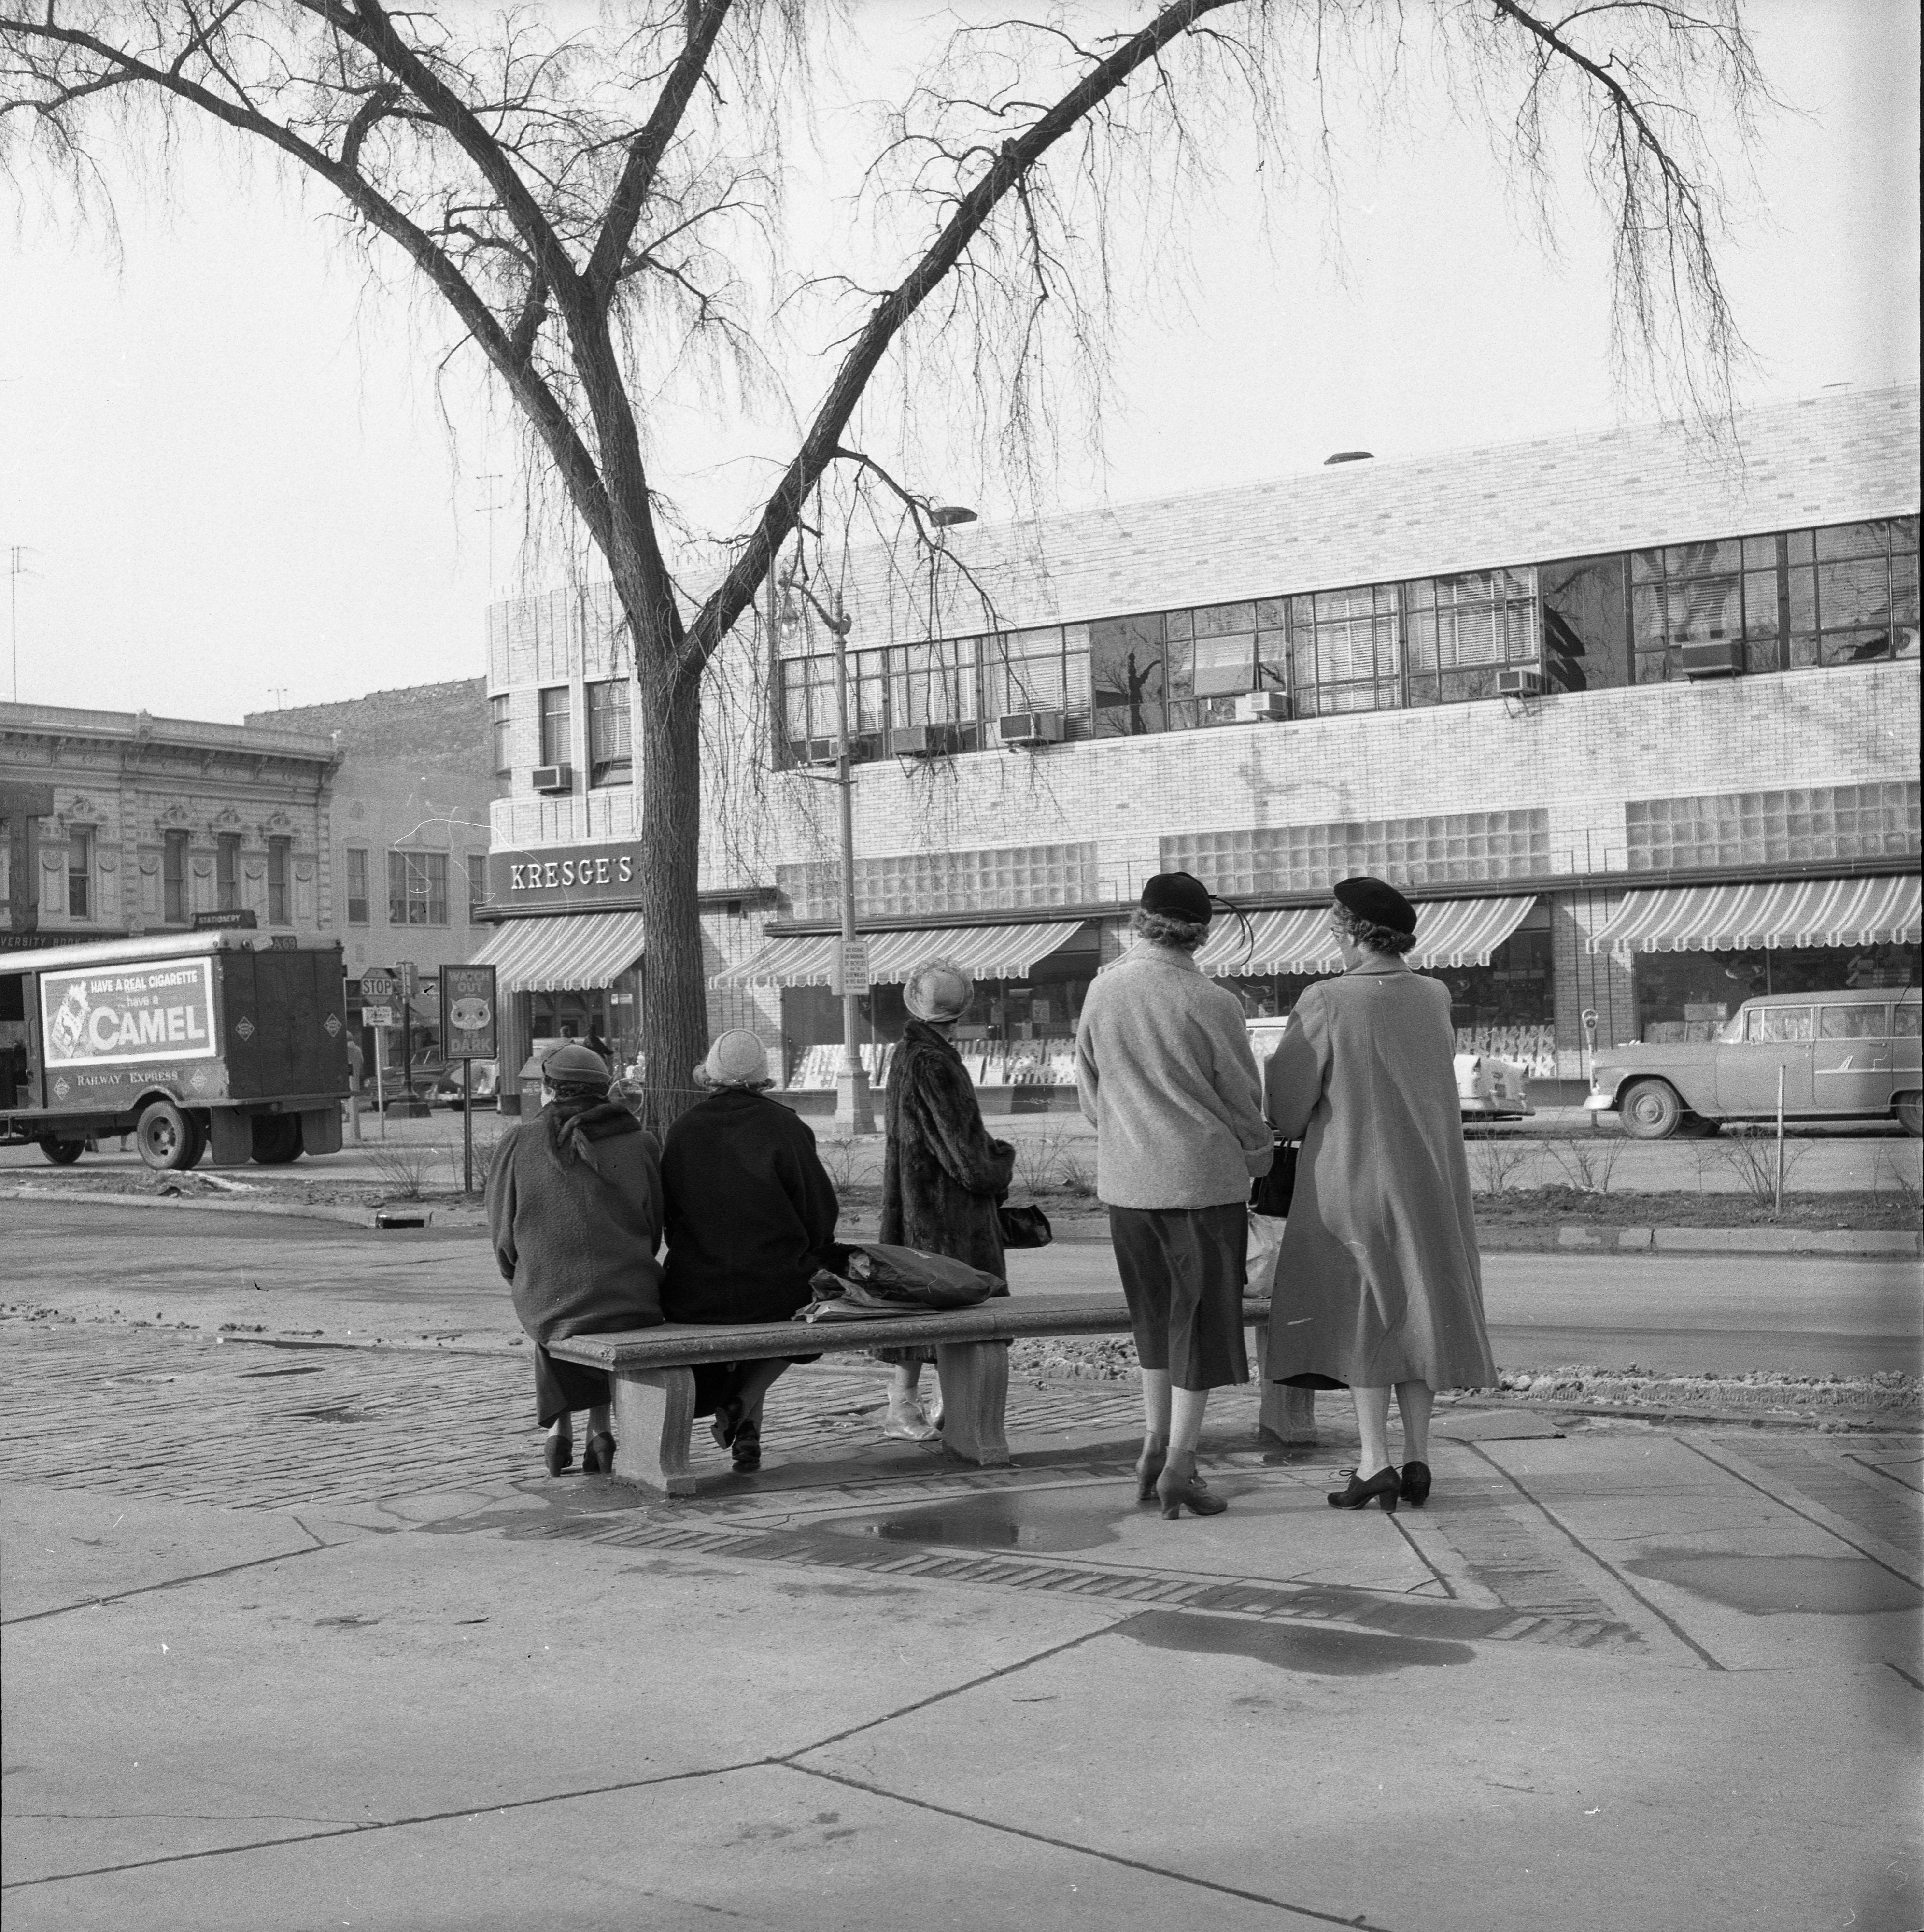 People Waiting For Bus Across From Kresge's On S University Ave, February 1957 image